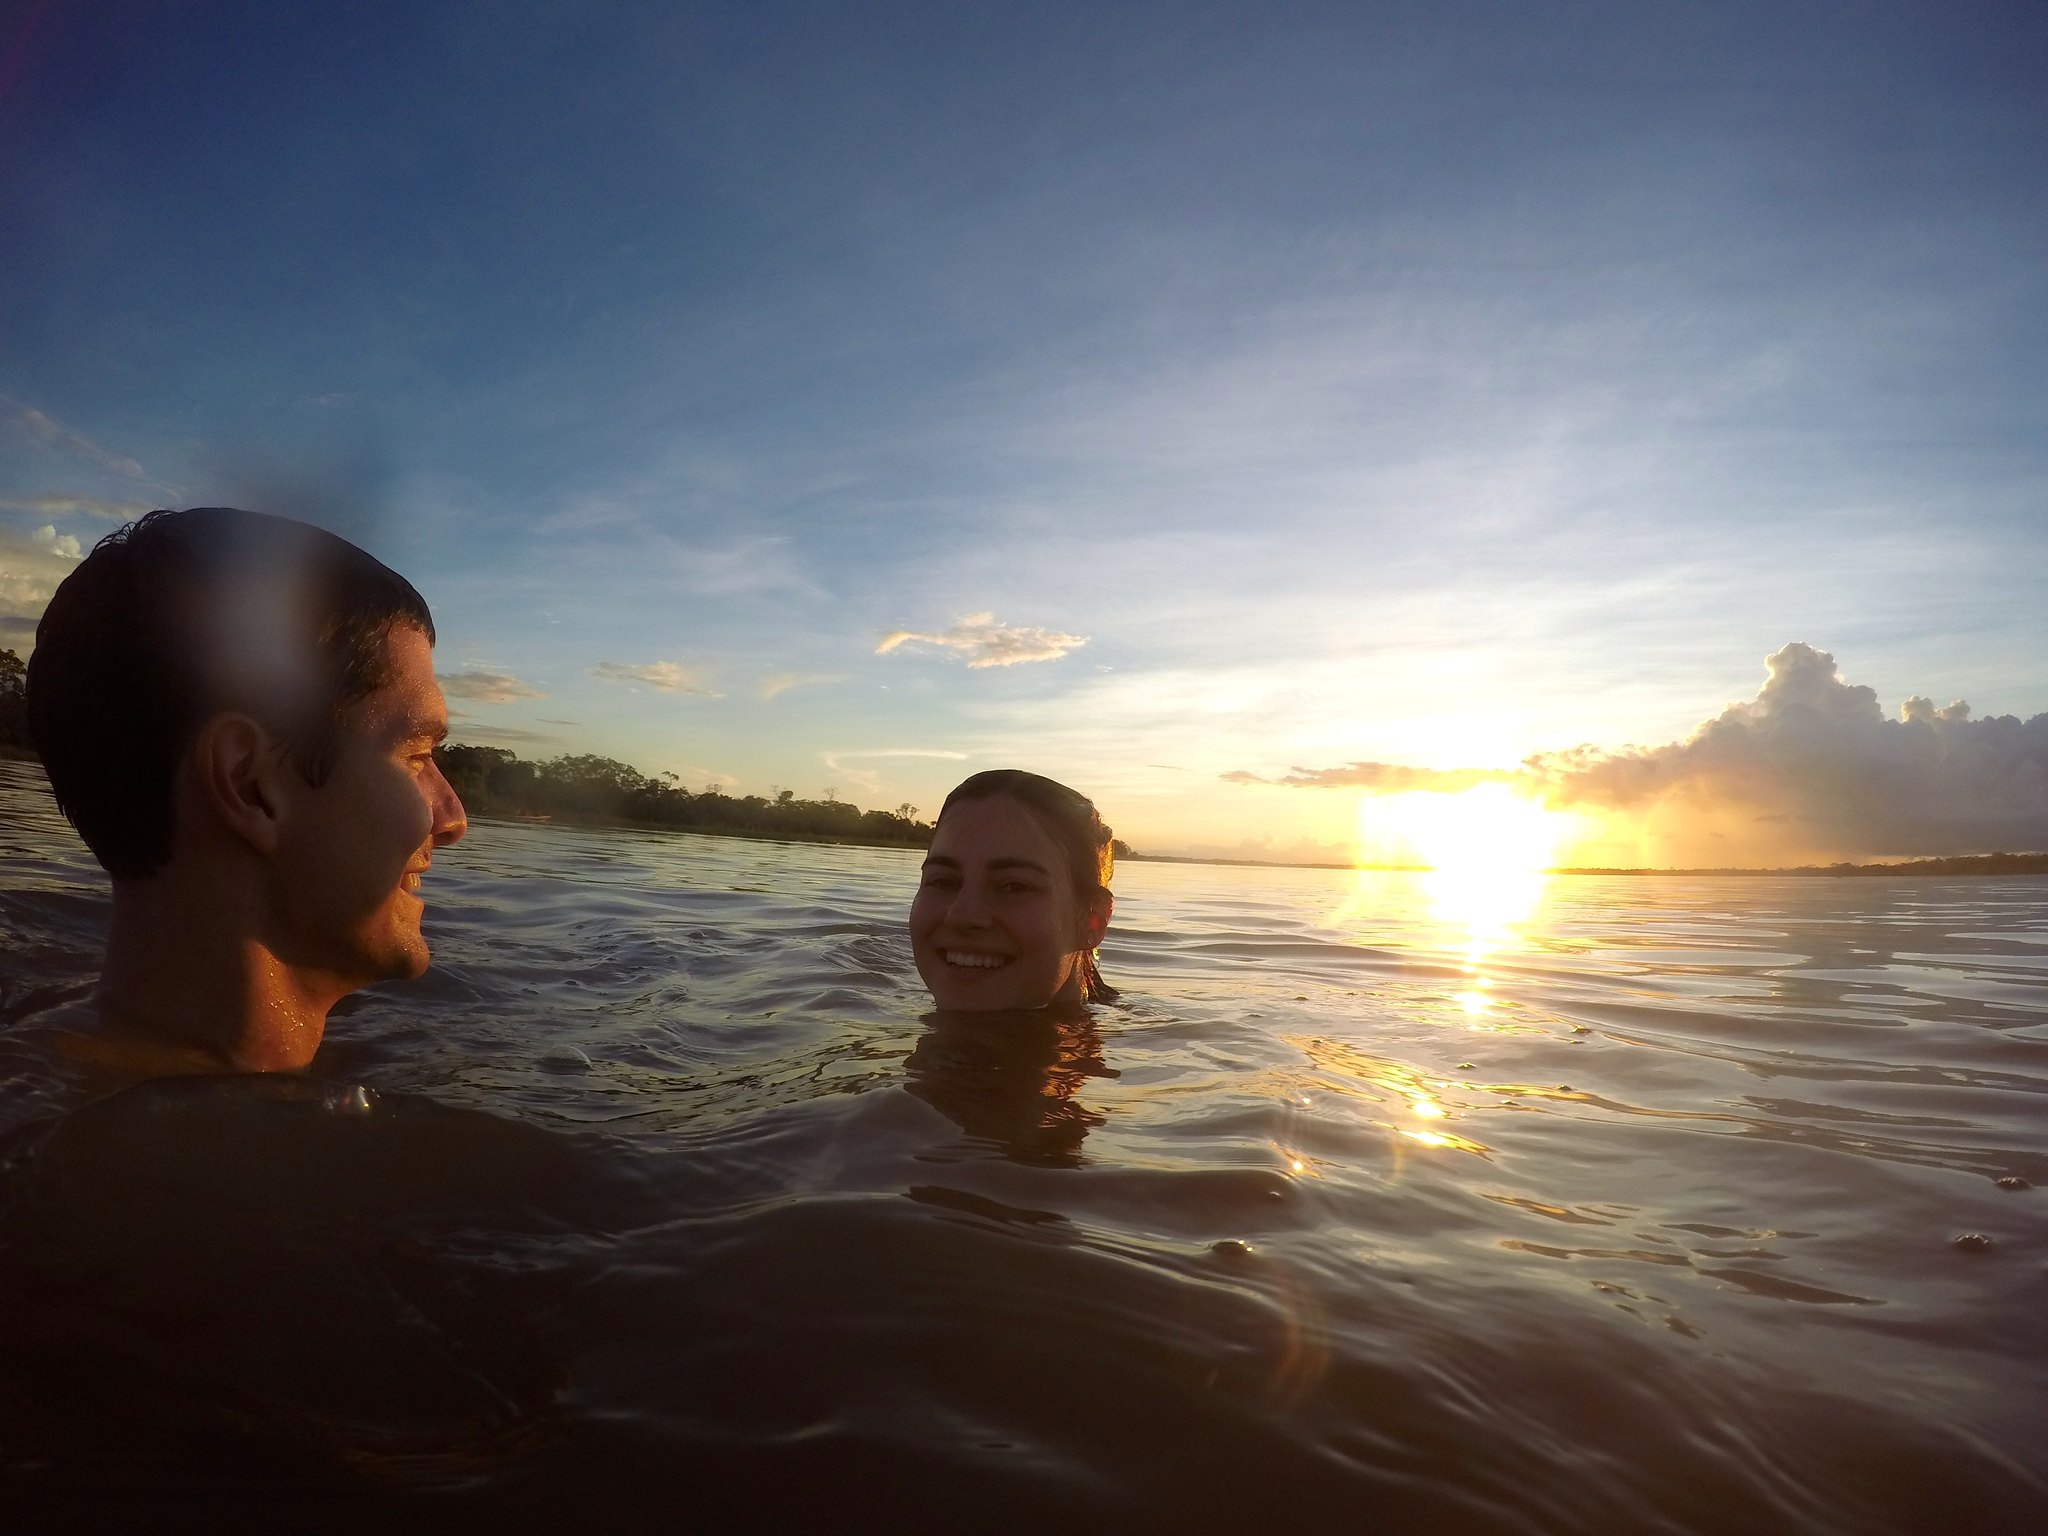 Swimming in the Amazon while the sun sets